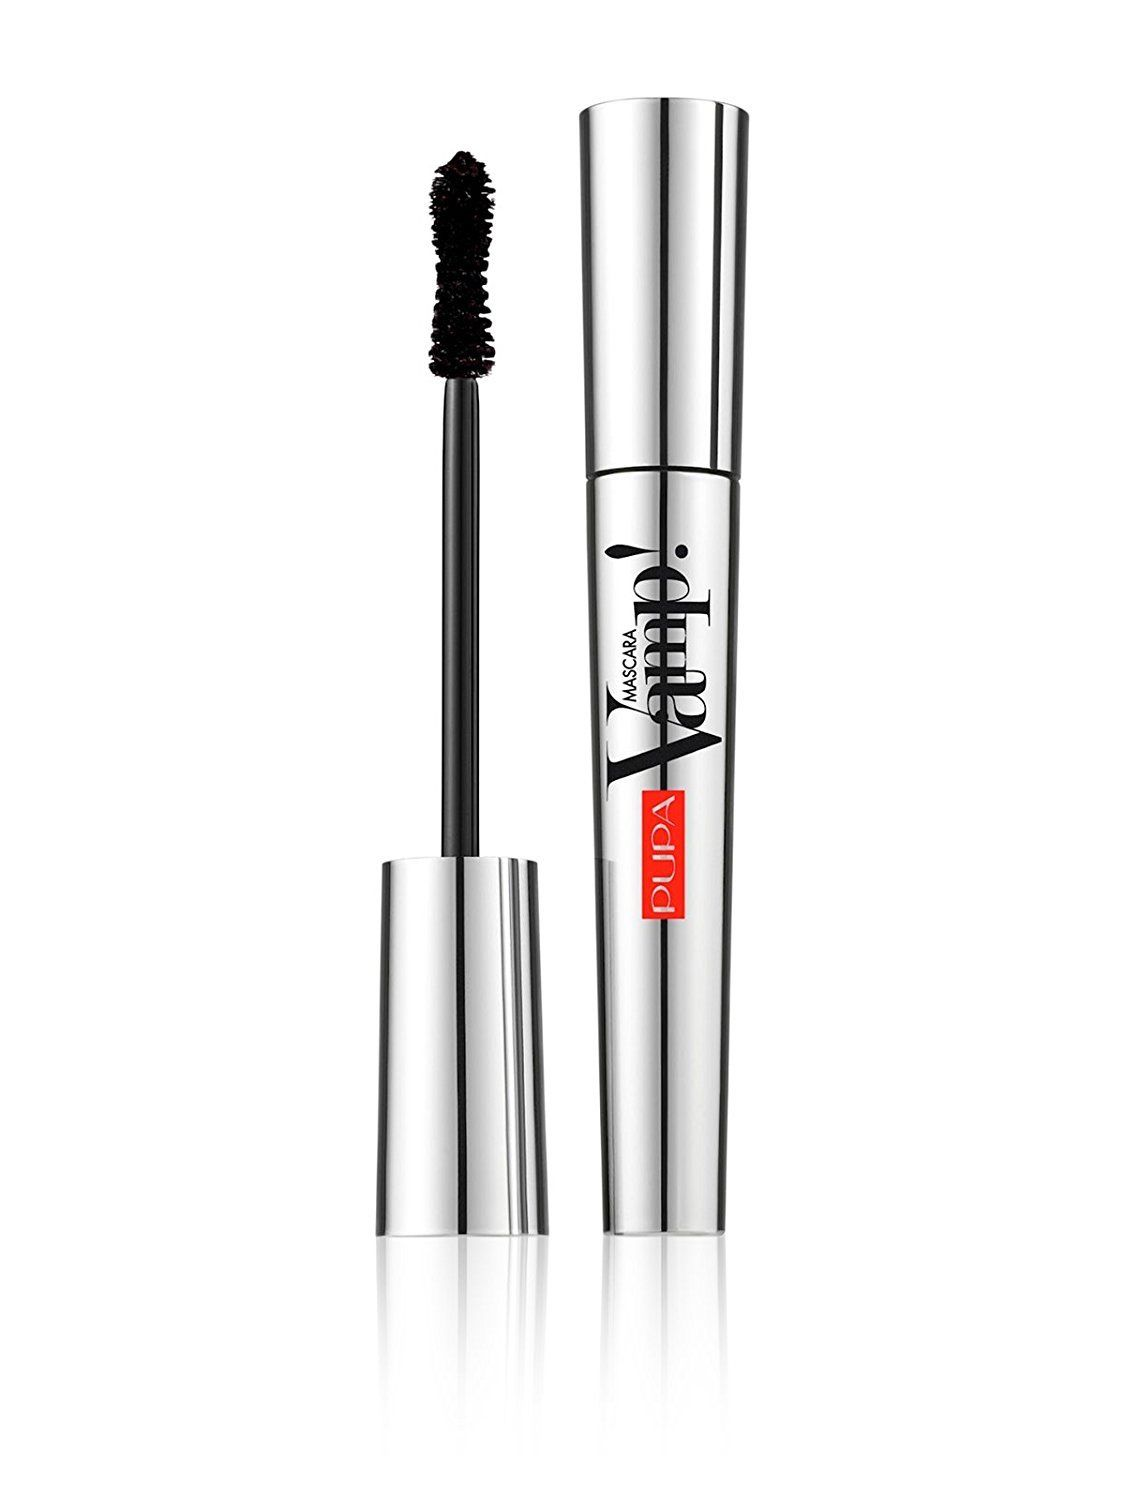 PUPA MASCARA VAMP N.100 EXTRA BLACK VOLUME SMISURATO 9ml